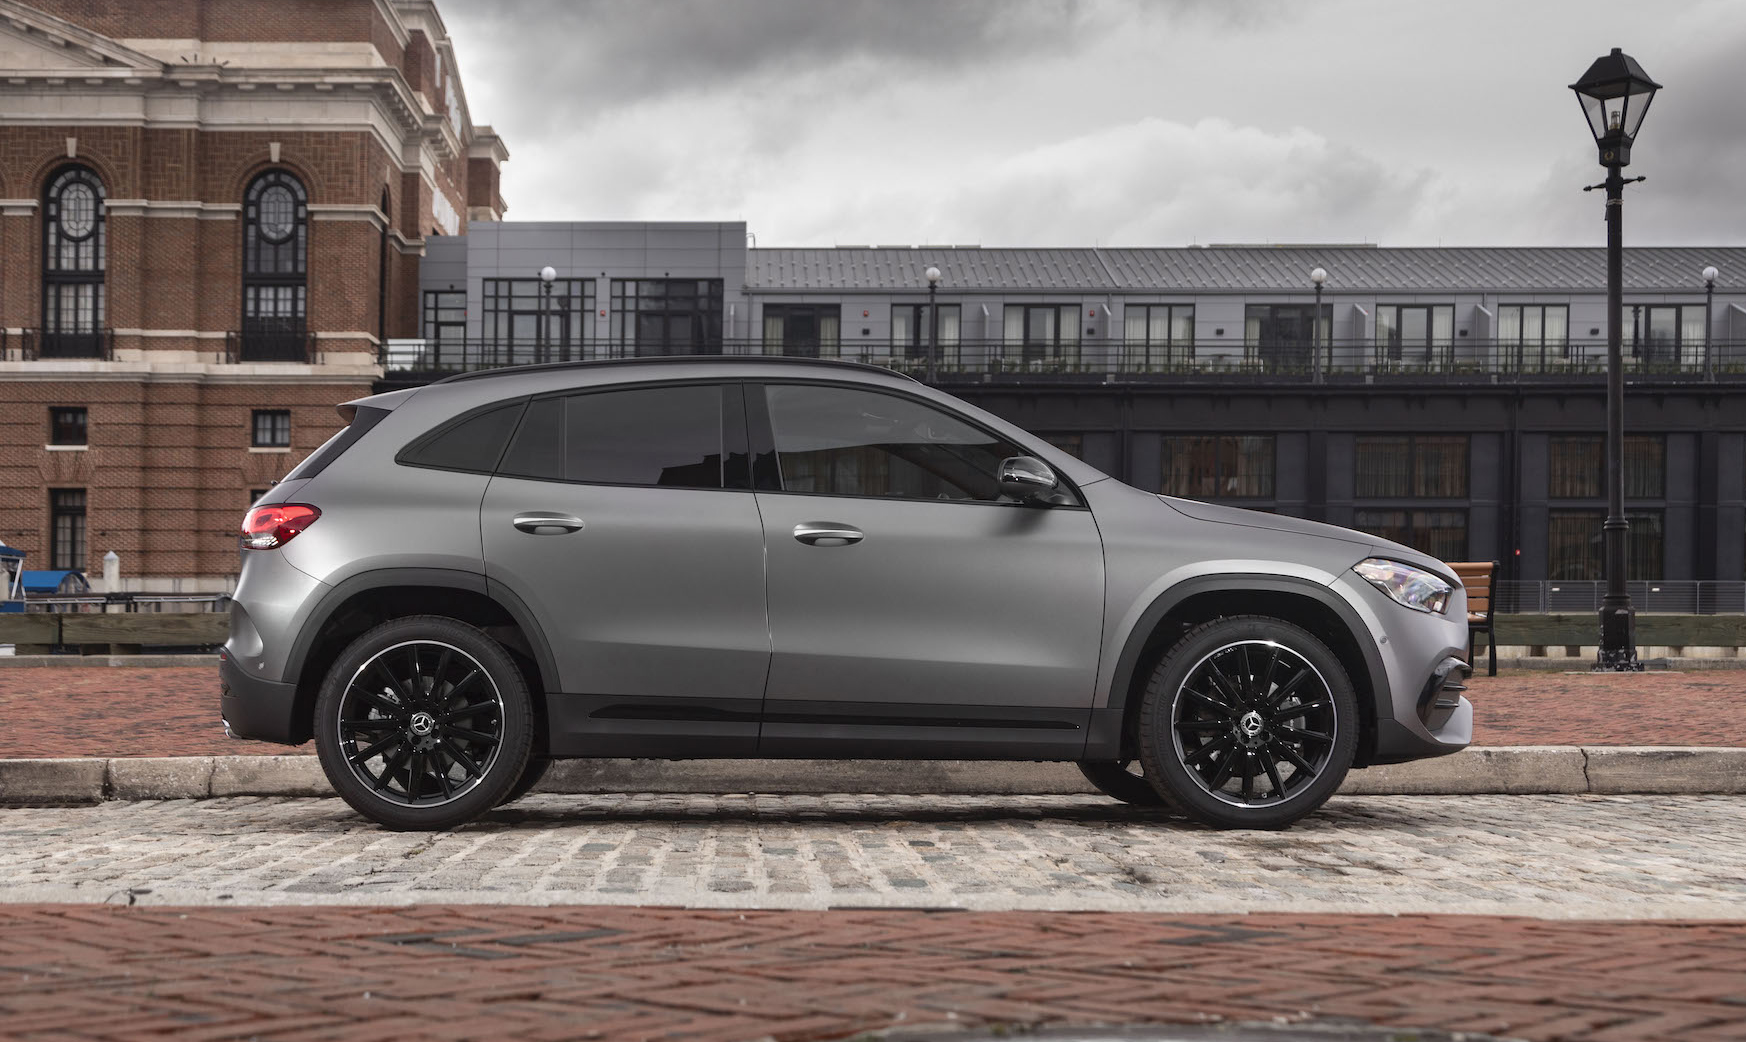 2022 Mercedes Benz Gla Black 250 Coupe Curb Weight